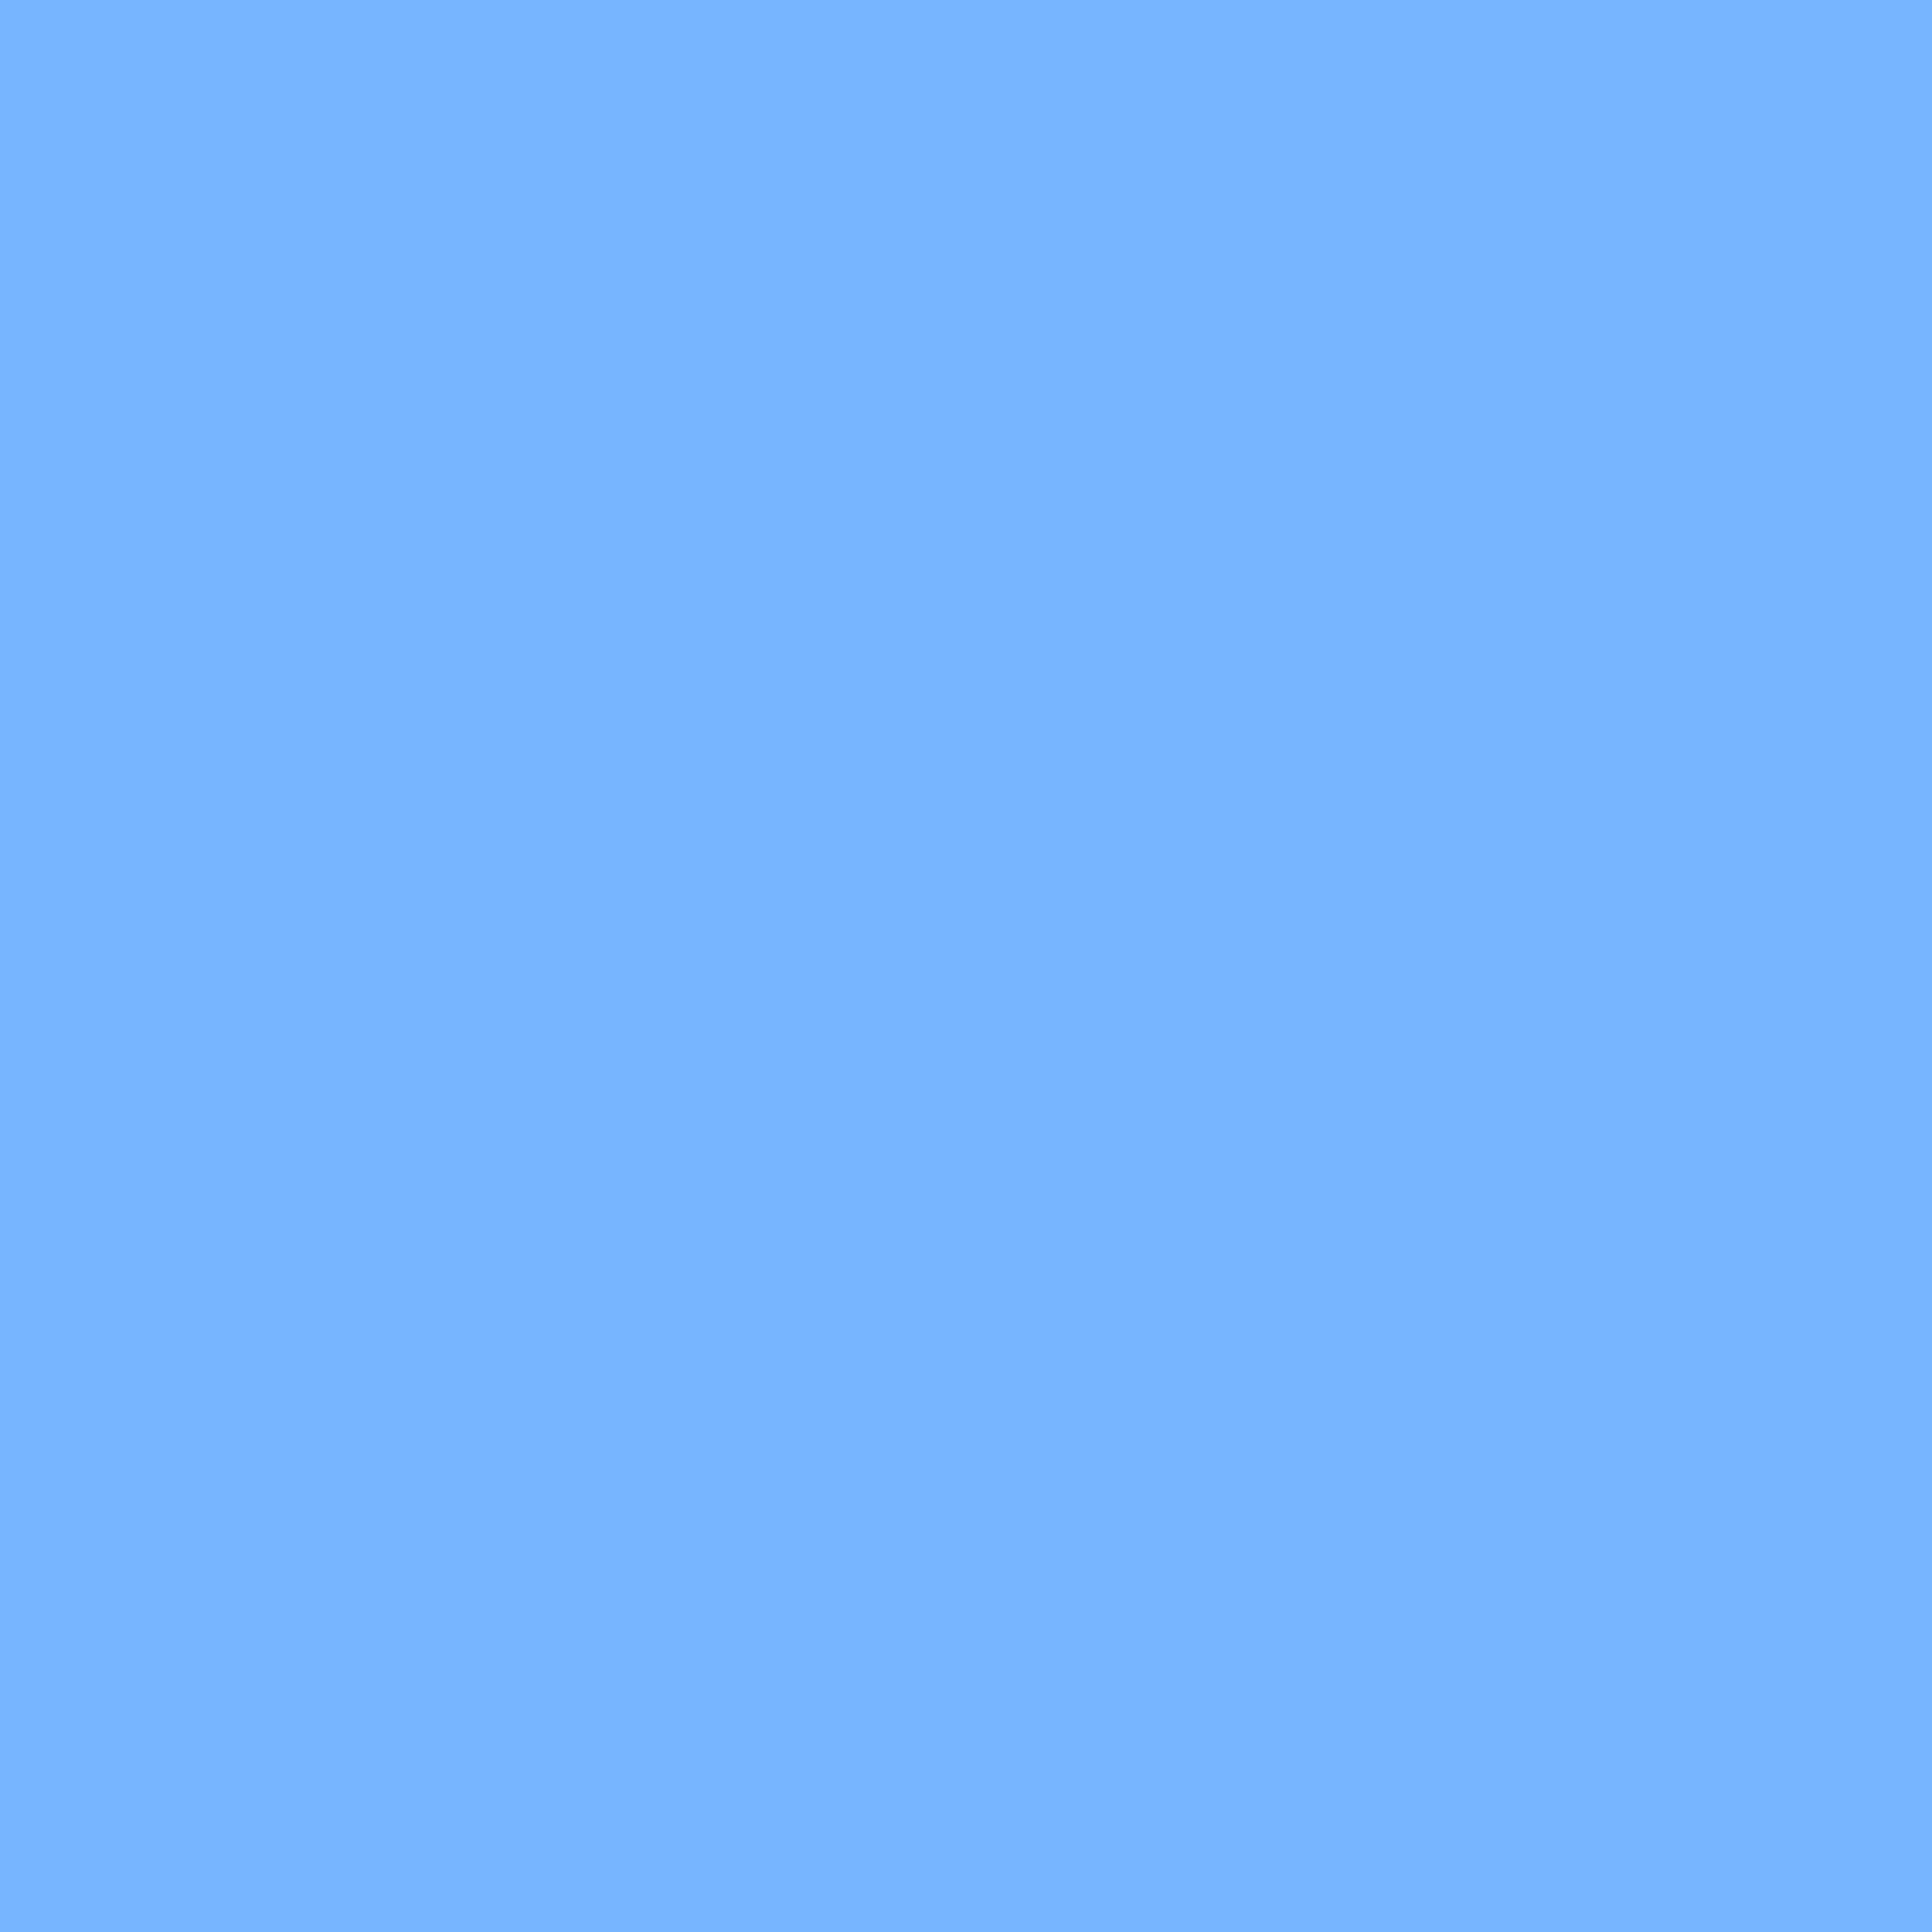 2048x2048 French Sky Blue Solid Color Background